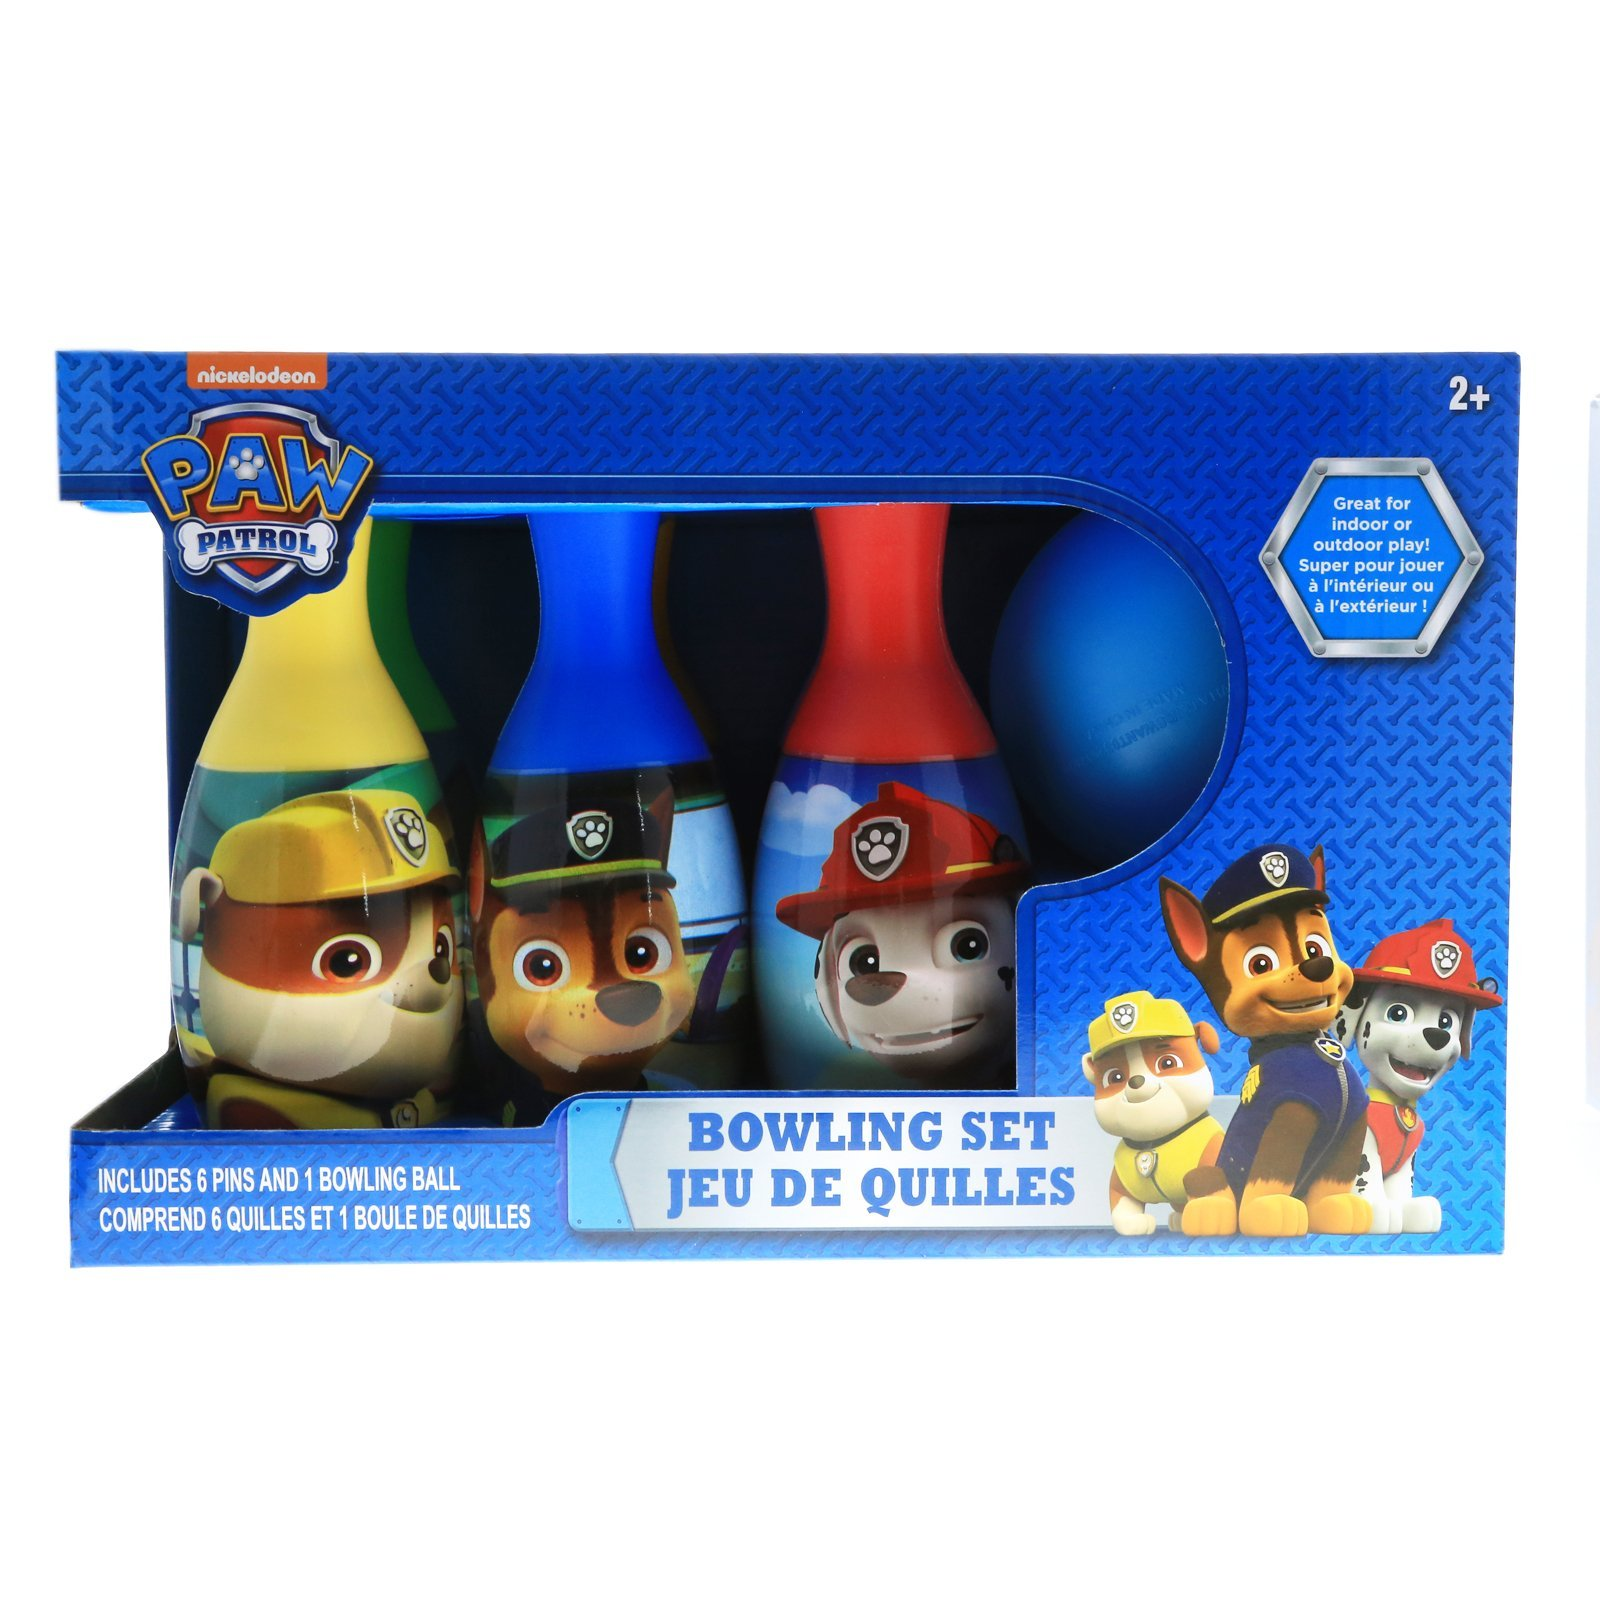 Nickelodeon PAW Patrol Bowling Pin Party Indoor Outdoor Family Play Set